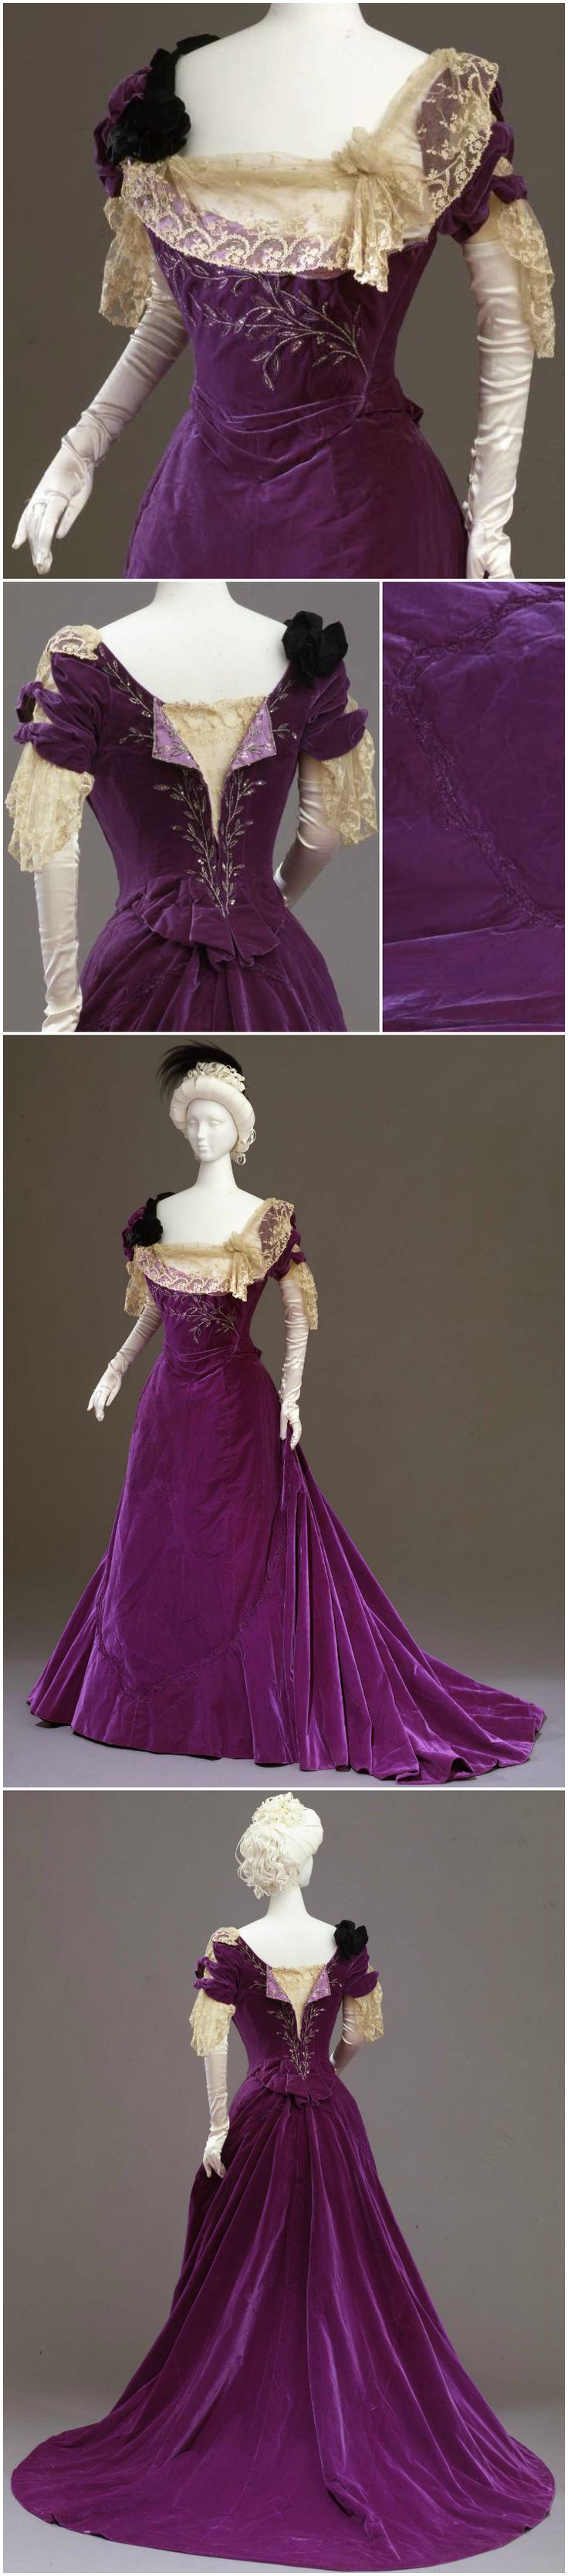 Purple velvet dress in two parts (bodice and skirt), by Atelier Worth, Paris, circa 1901, at the Pitti Palace Costume Gallery. Via Europeana Fashion.